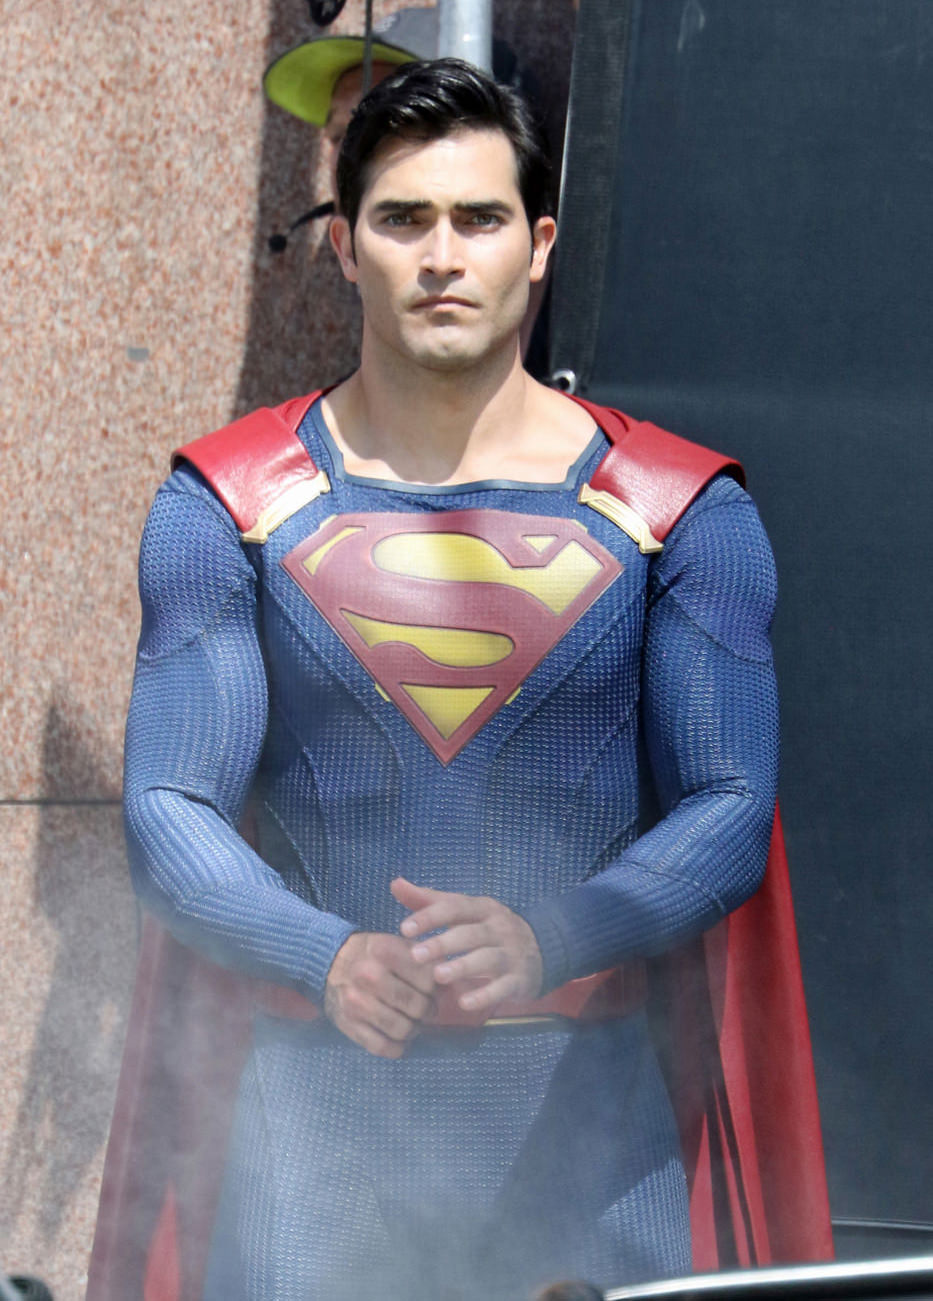 Tyler-Hoechlin-TV-Set-Supergirl-Superman-Costumes-Tom-Lorenzo-Site-12.jpg